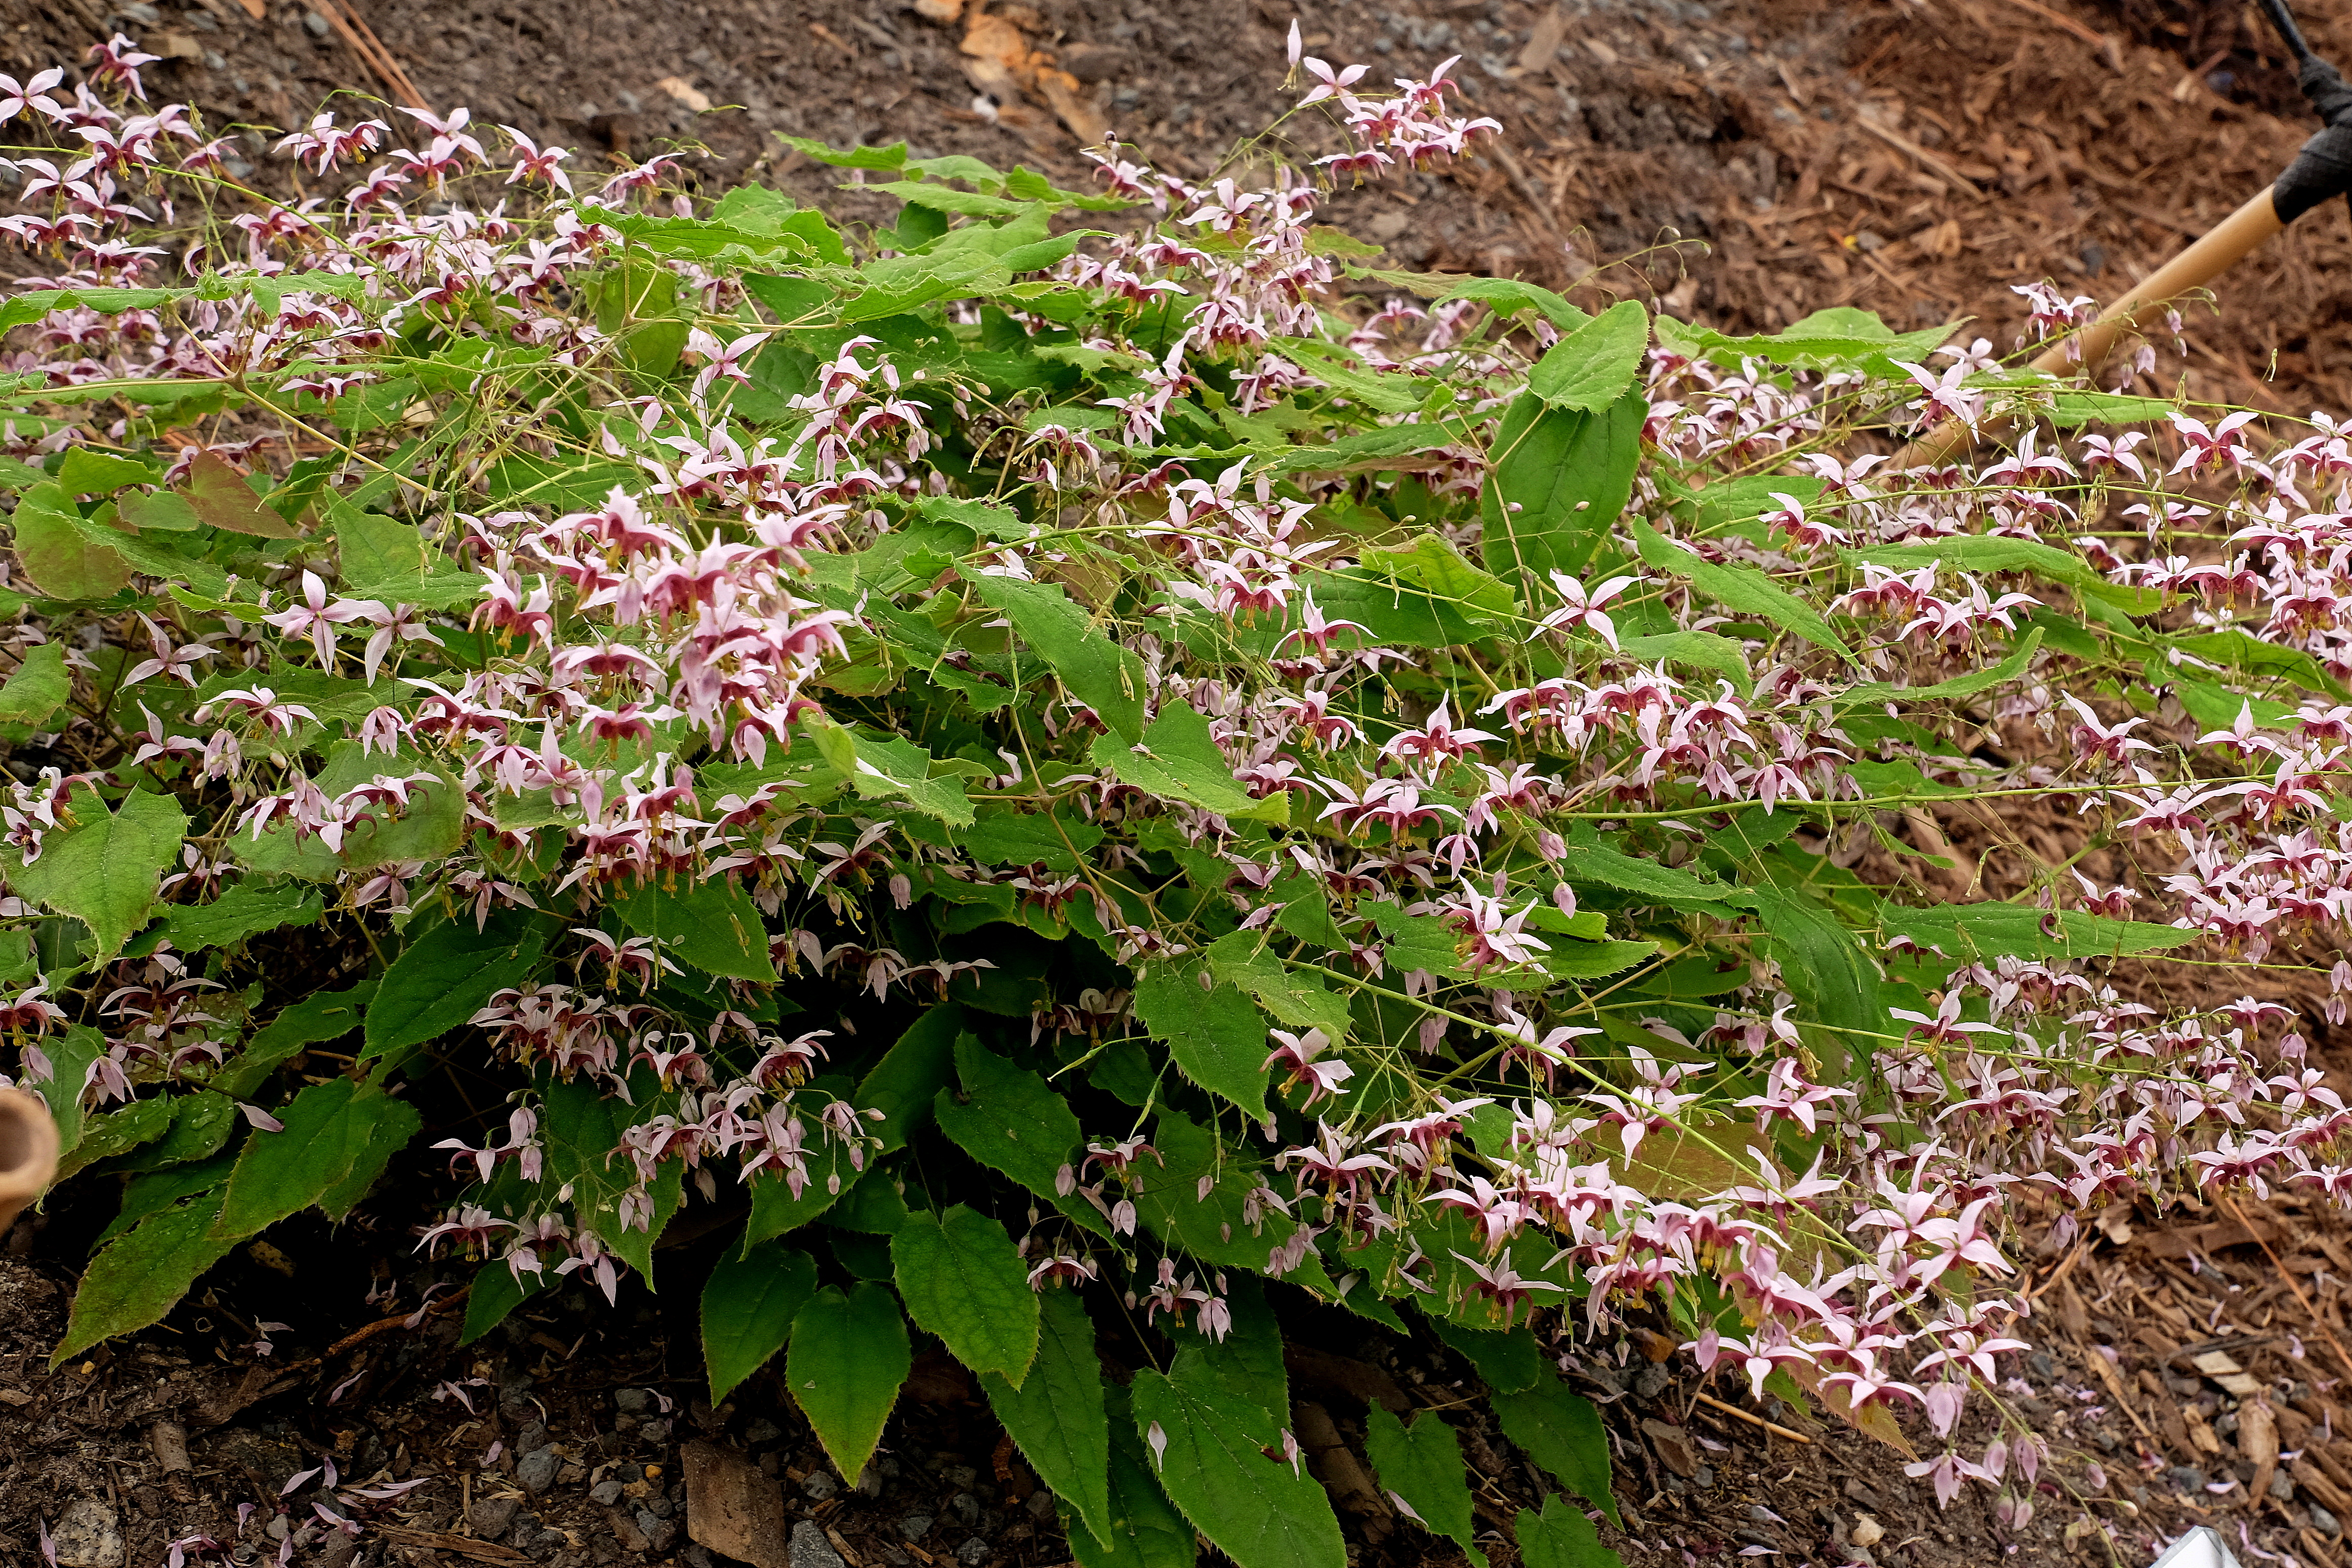 Epimedium 'Cosmic Stars' @ JLBG; (PDN11-008) - a 2019 JLBG/PDN introduction